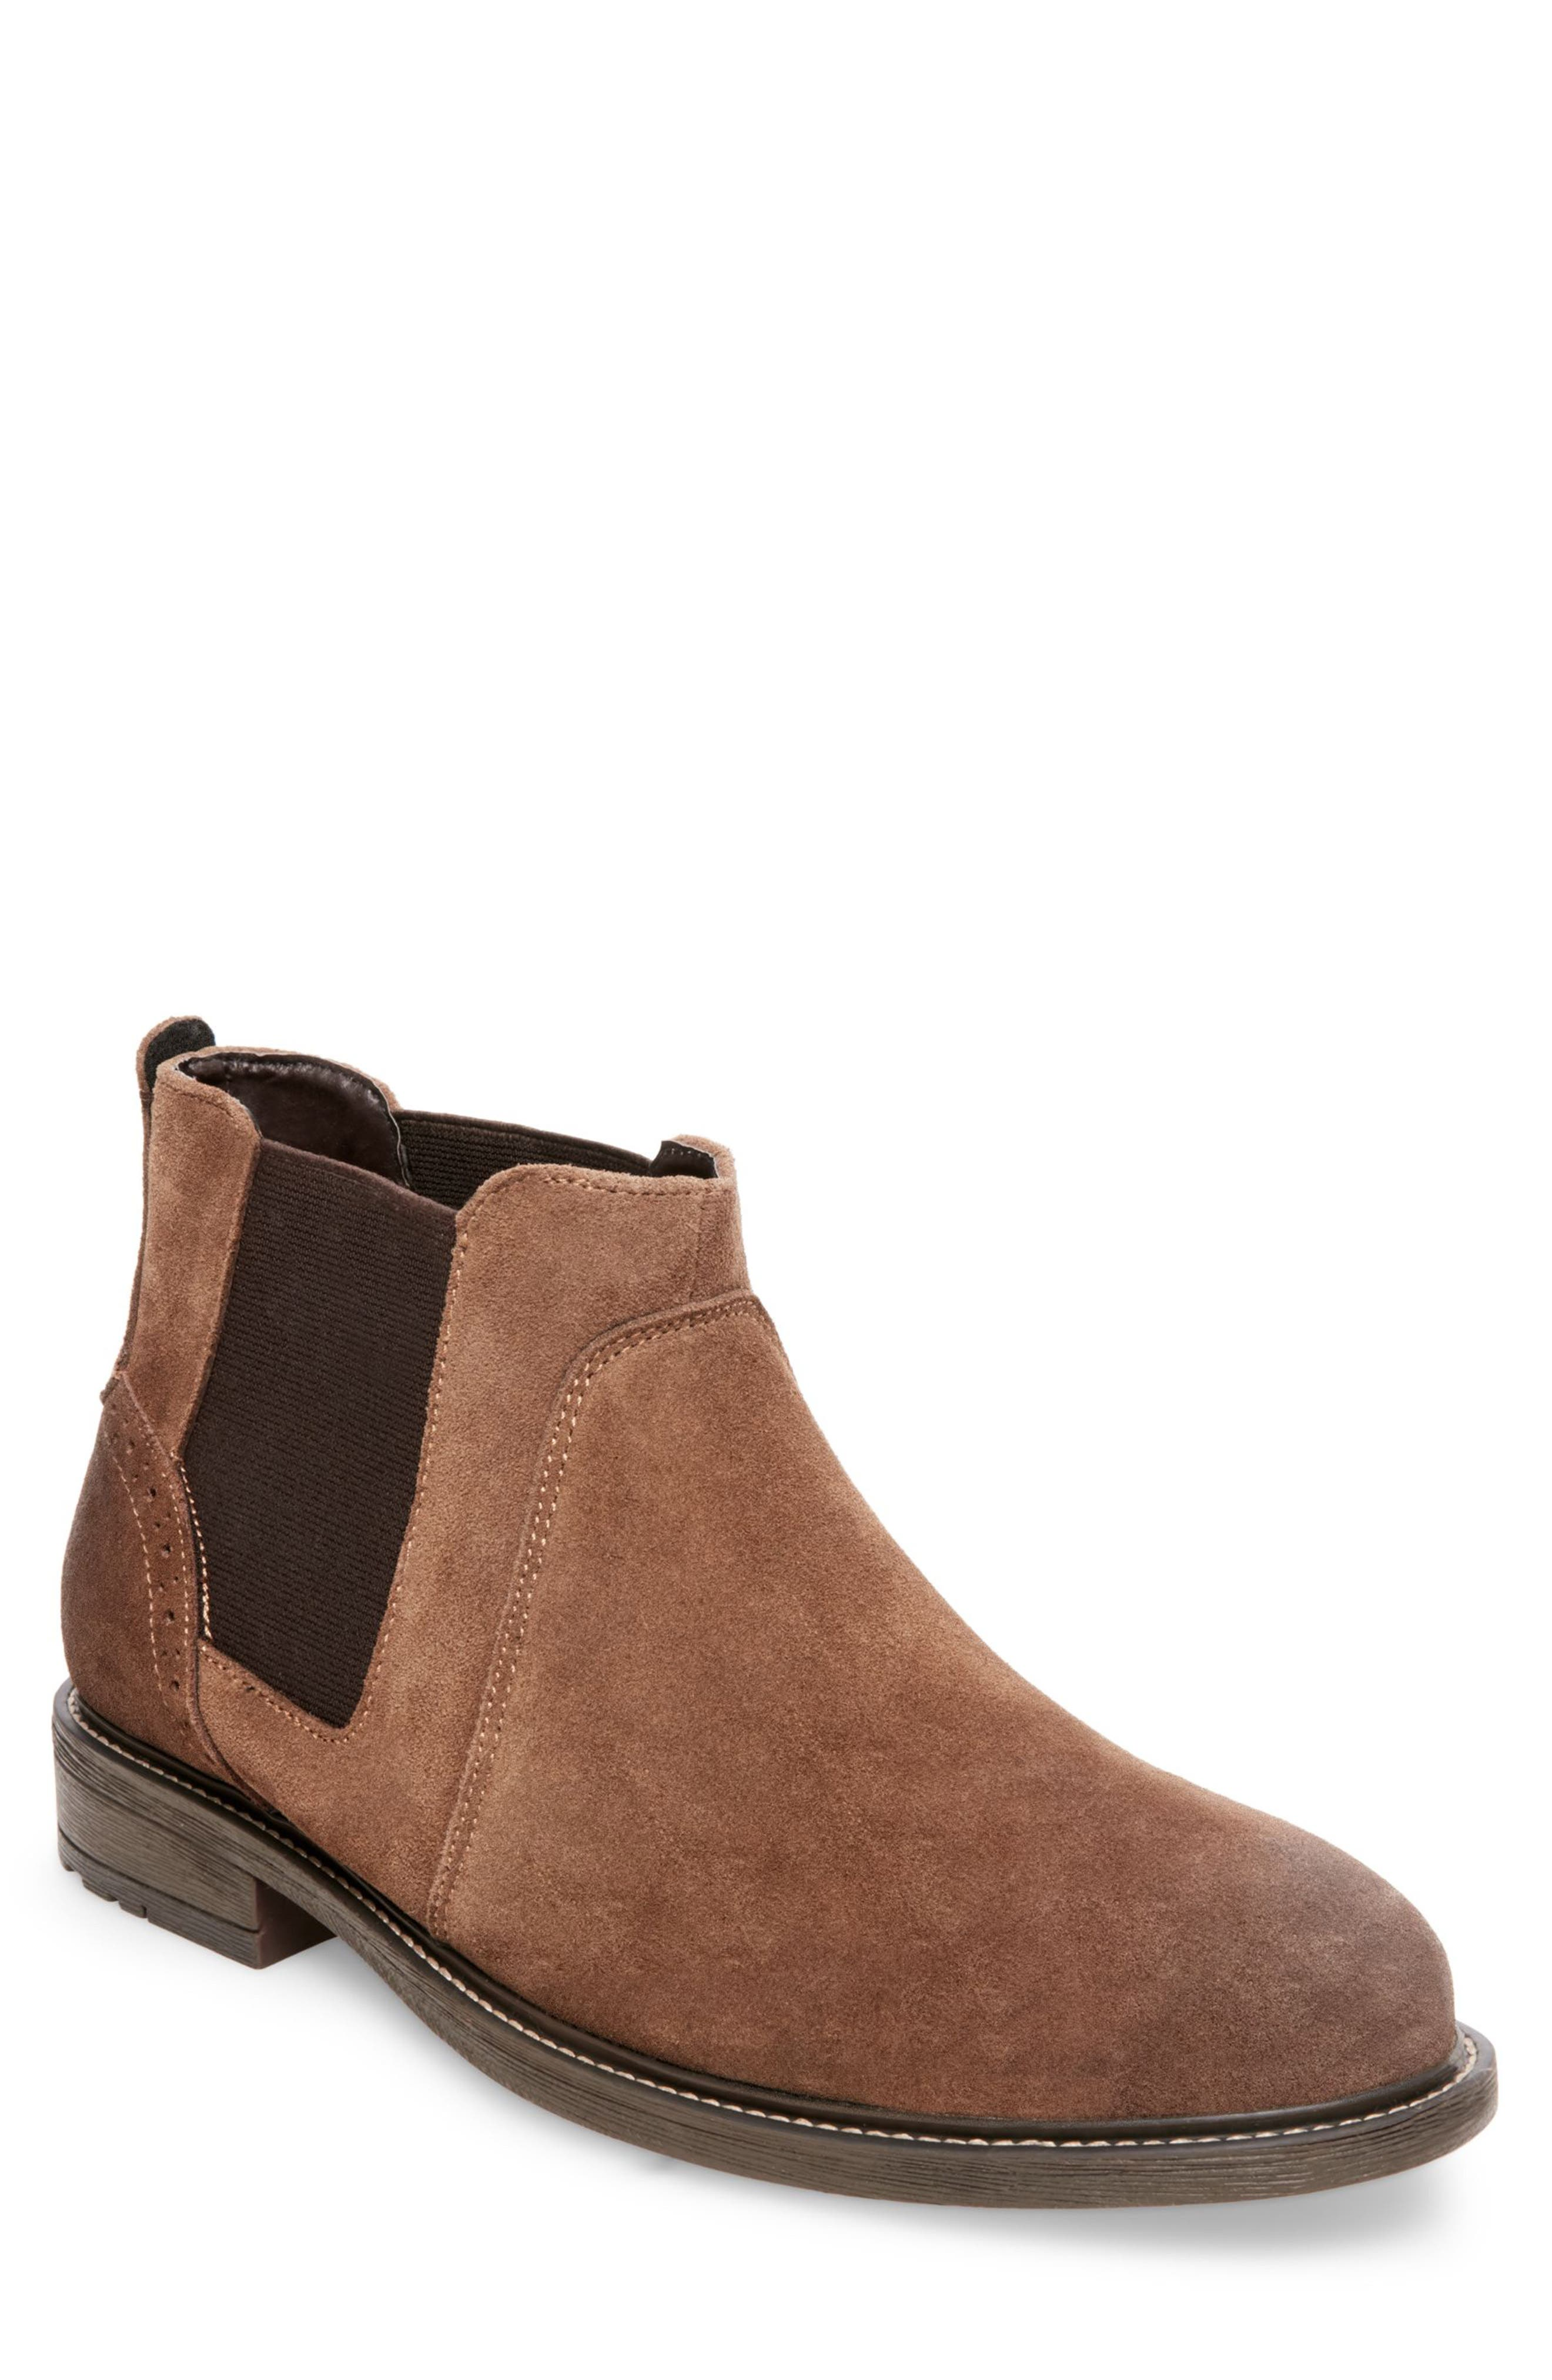 Tampa Chelsea Boot,                         Main,                         color, CAMEL SUEDE